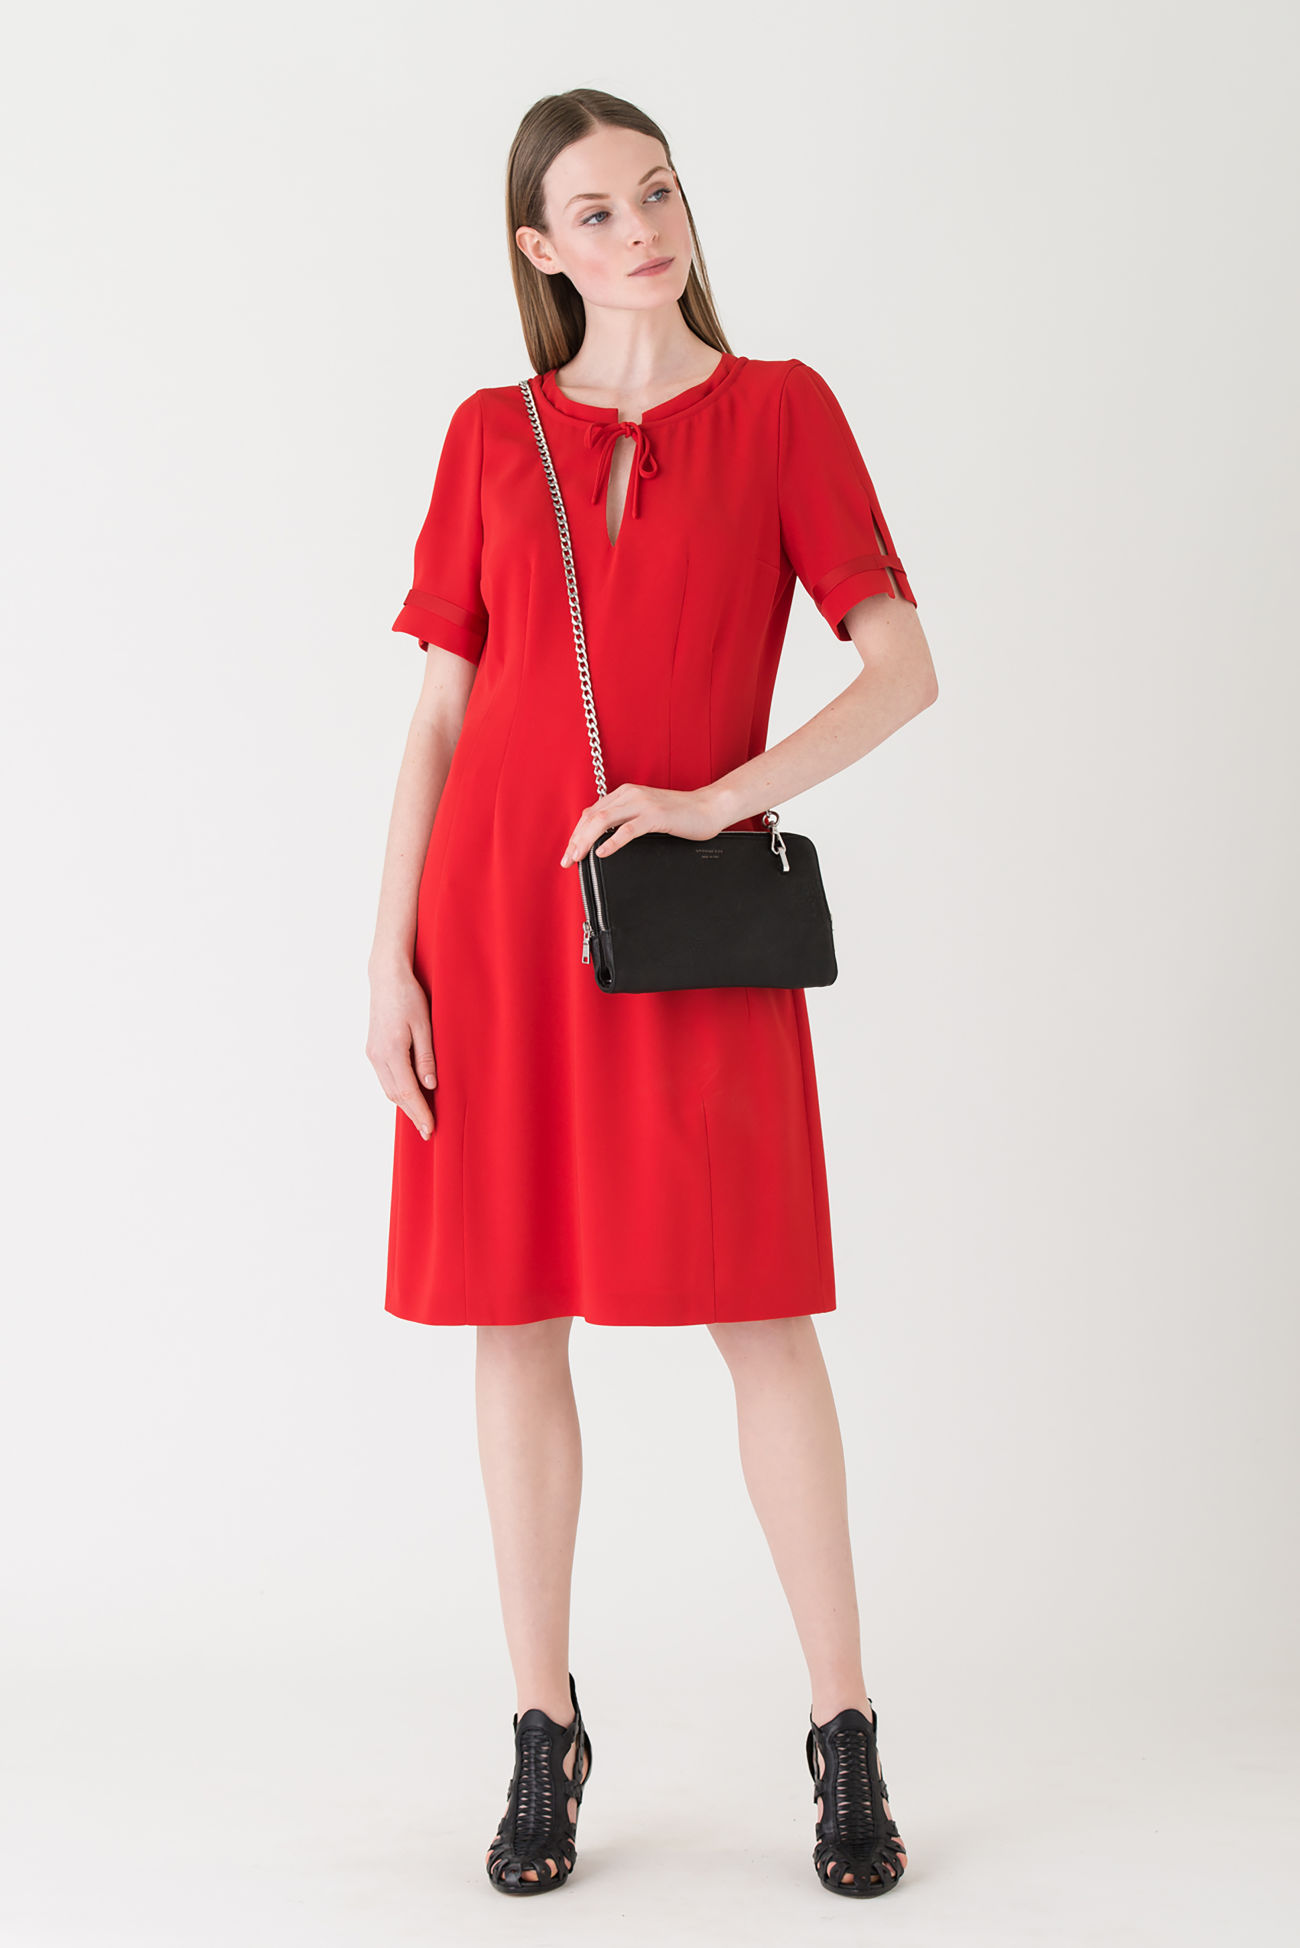 Uncomplicated all-round dress made of flowing crêpe